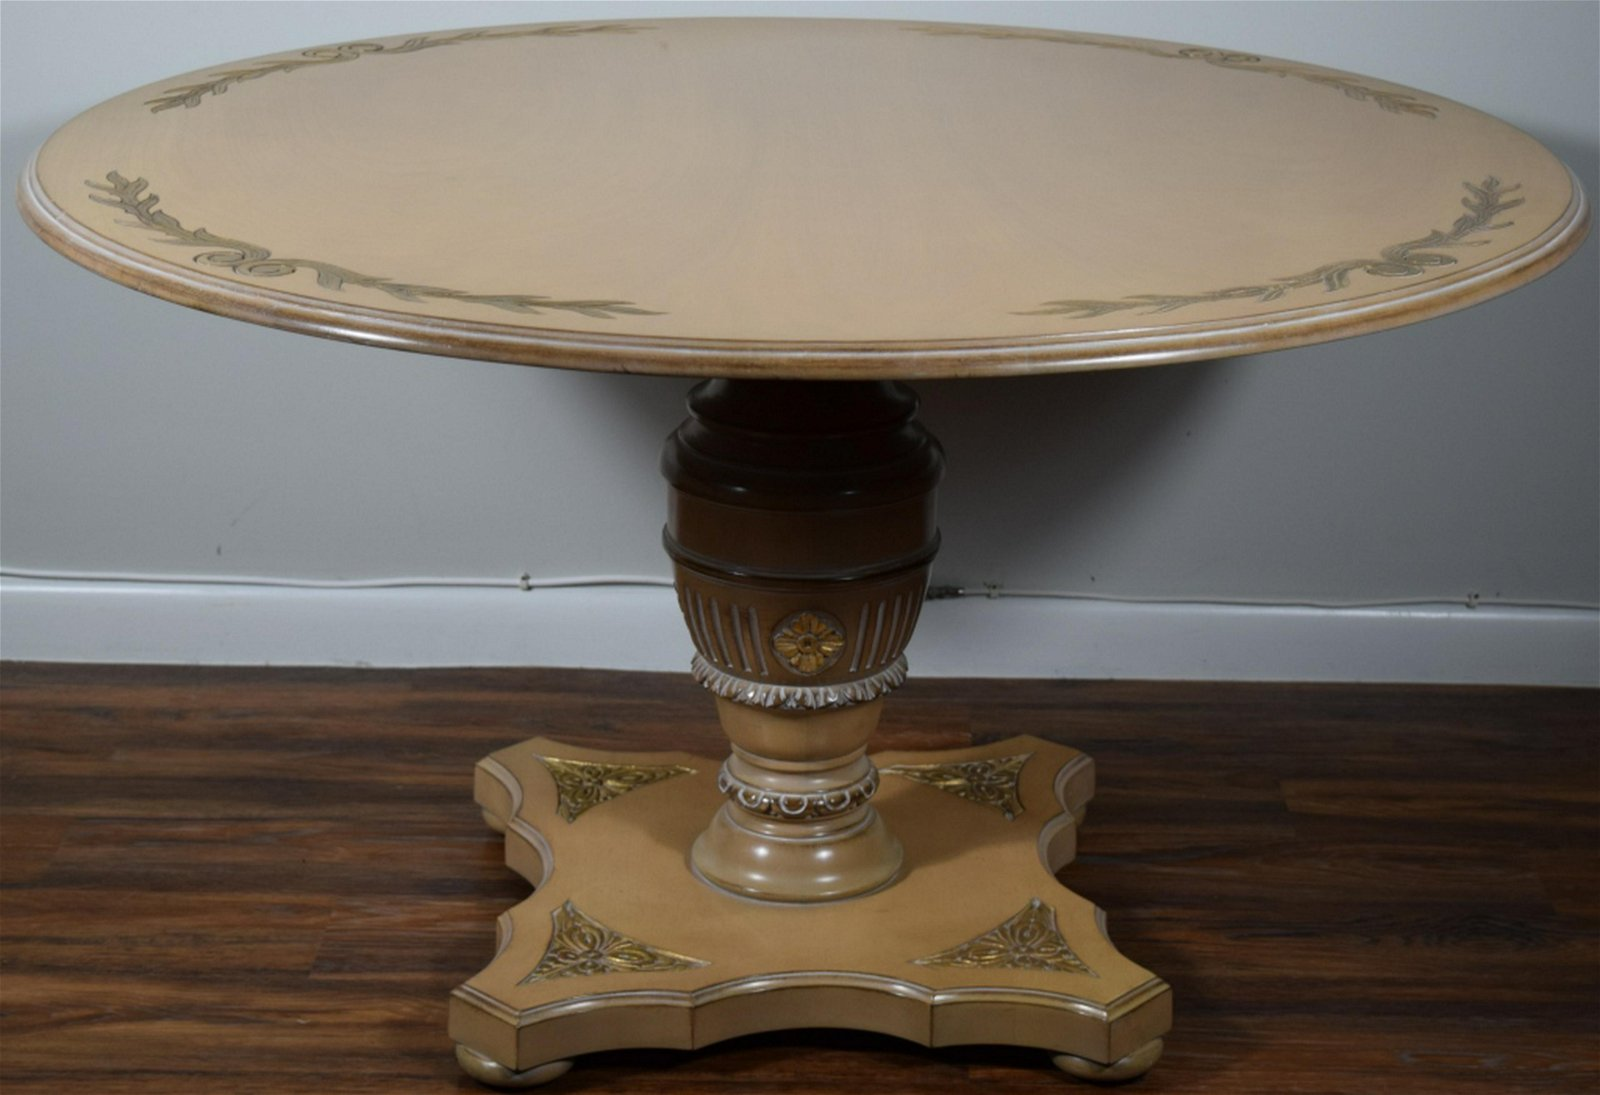 VINTAGE LARGE ROUND WOODEN TABLE